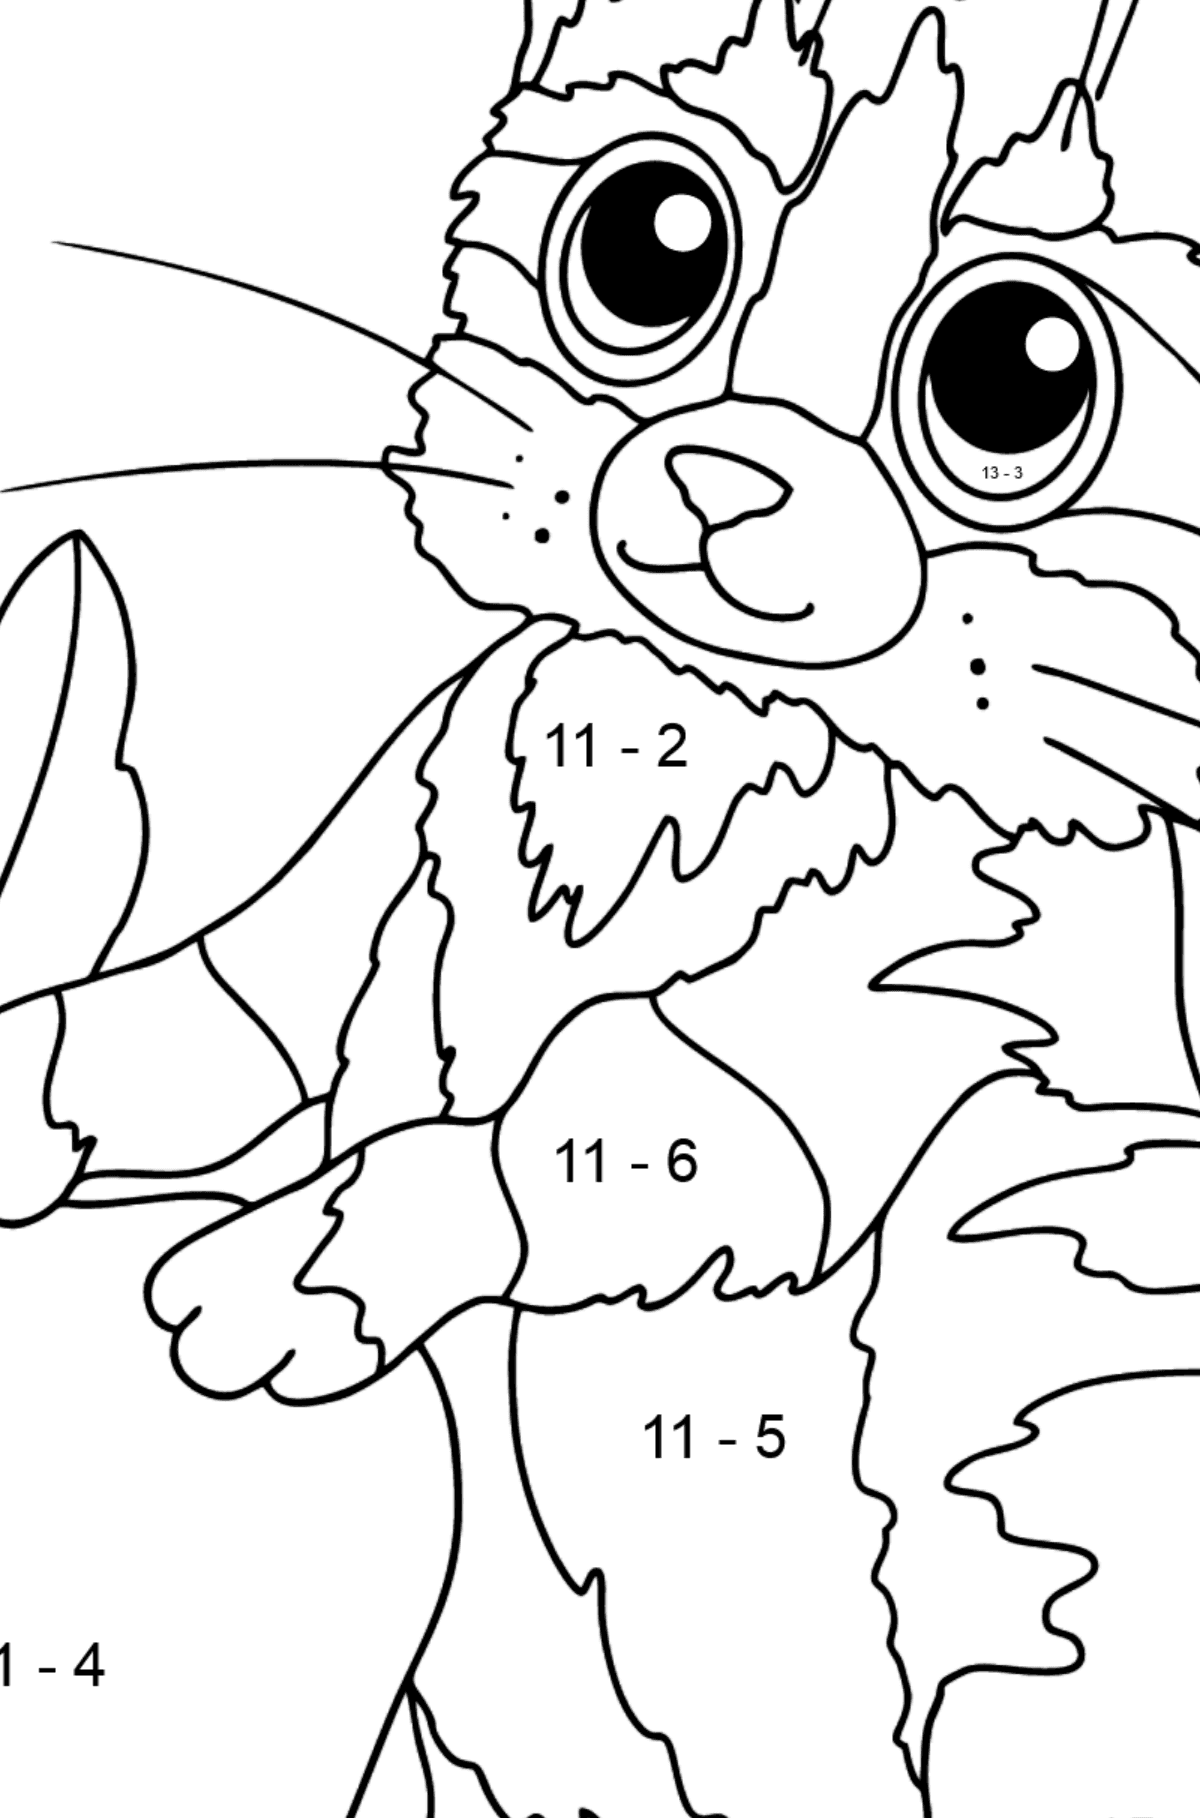 A Kitten is Playing with an Apple - Stampy cat coloring page - Math Coloring - Subtraction for Kids